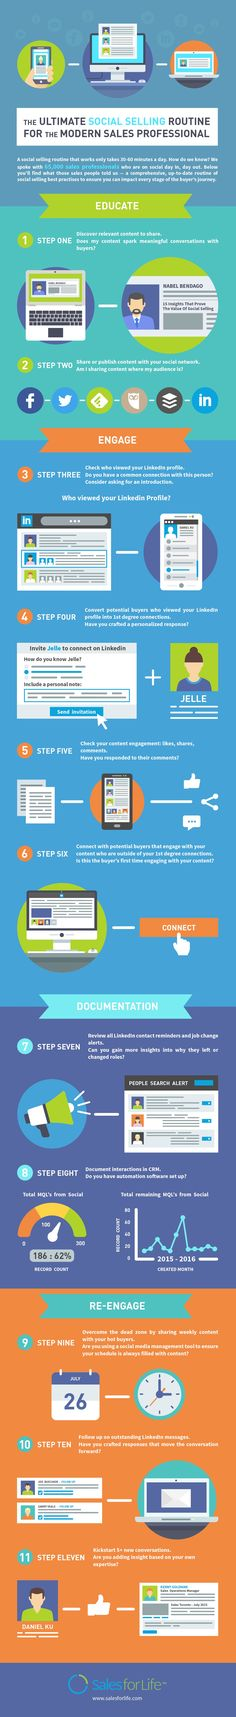 The Ultimate Social Selling Routine For The Modern Sales Pro [Infographic]   Social Media Today